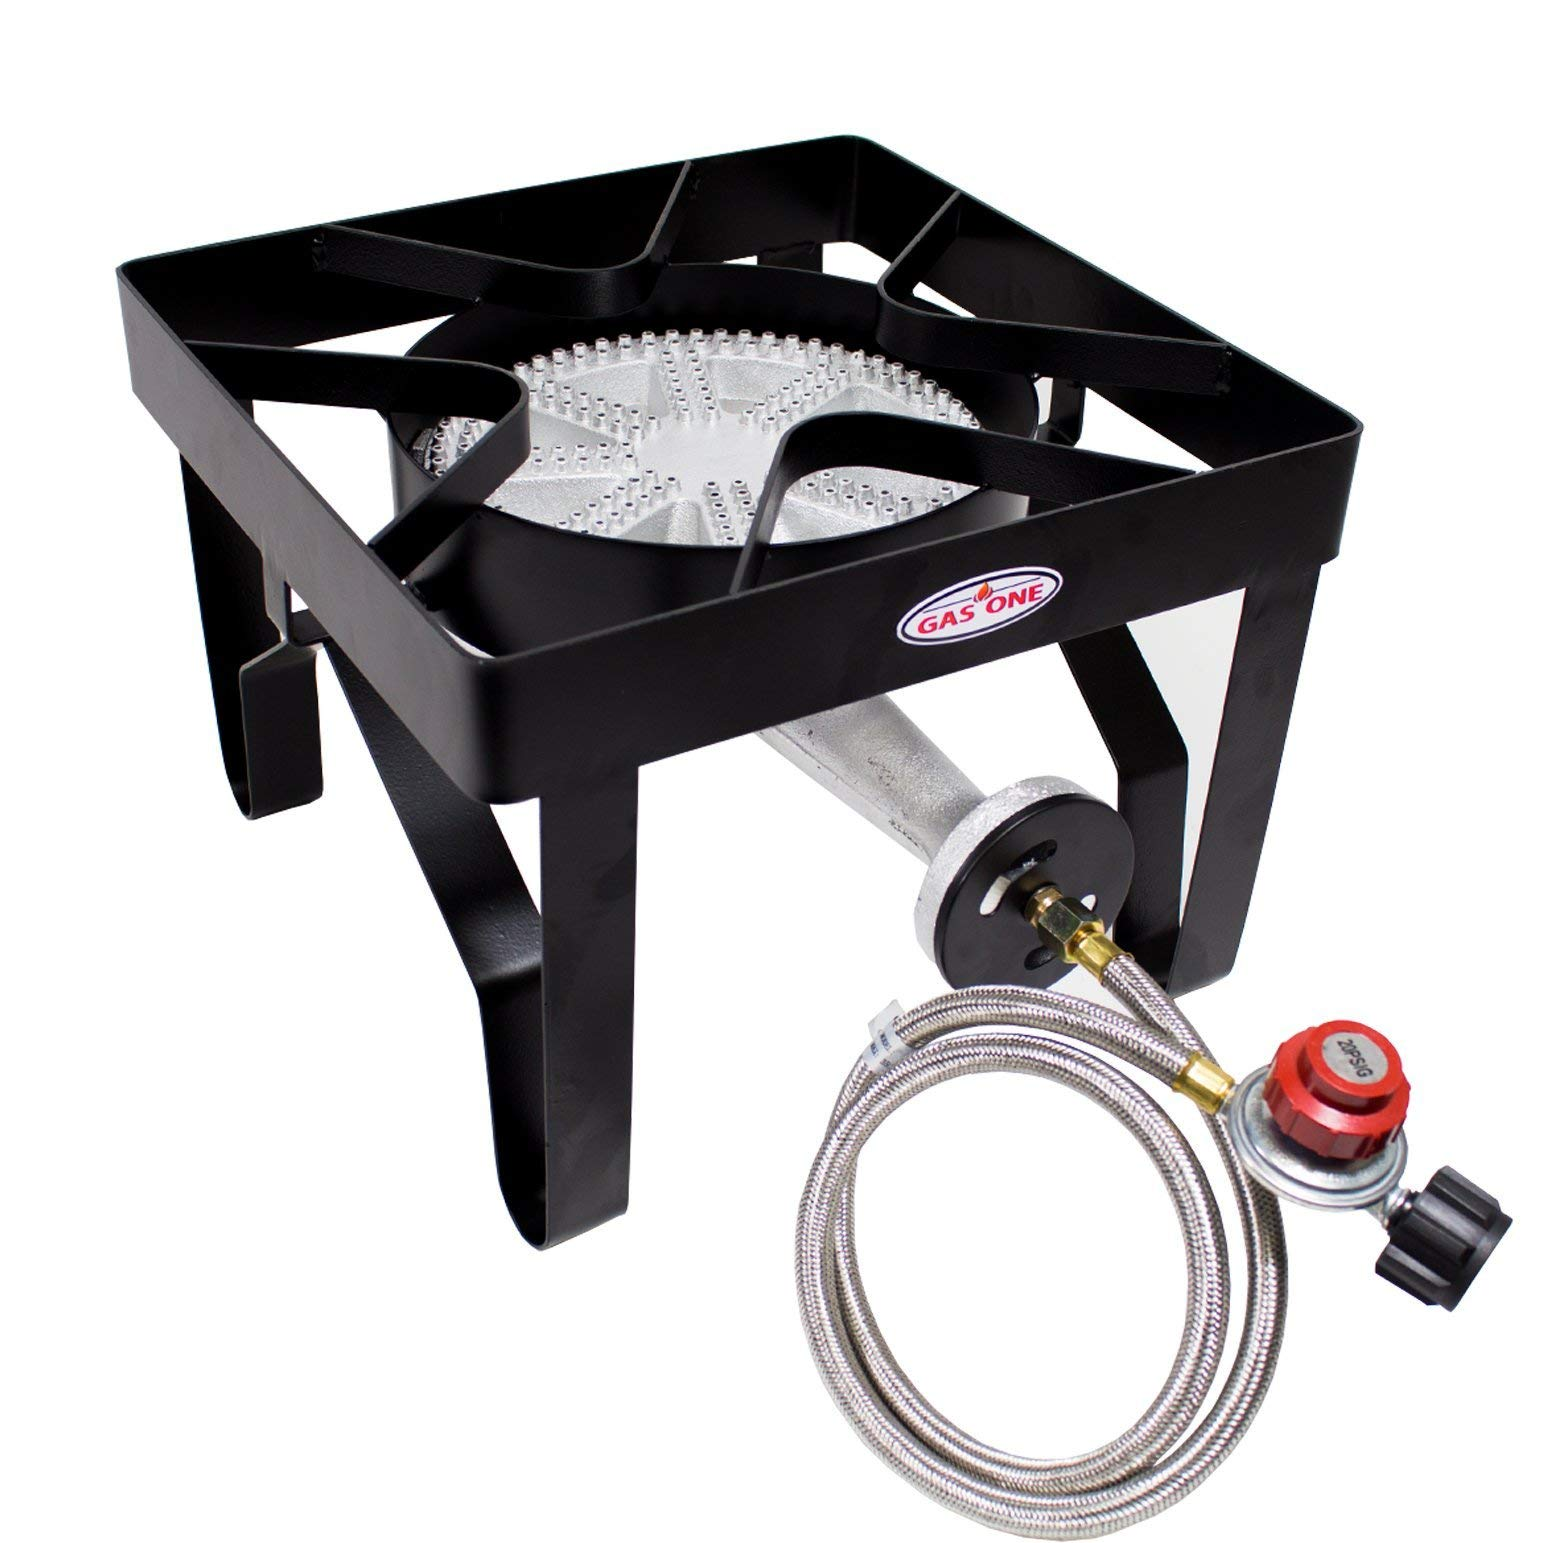 Gas ONE 200,000 BTU Square Propane Burner Outdoor Stove Propane Gas Cooker with Adjustable 0-20PSI Regulator and Steel Braided Hose Perfect for Home Brewing, Turkey Fry, Maple Syrup Prep (Renewed) by GasOne